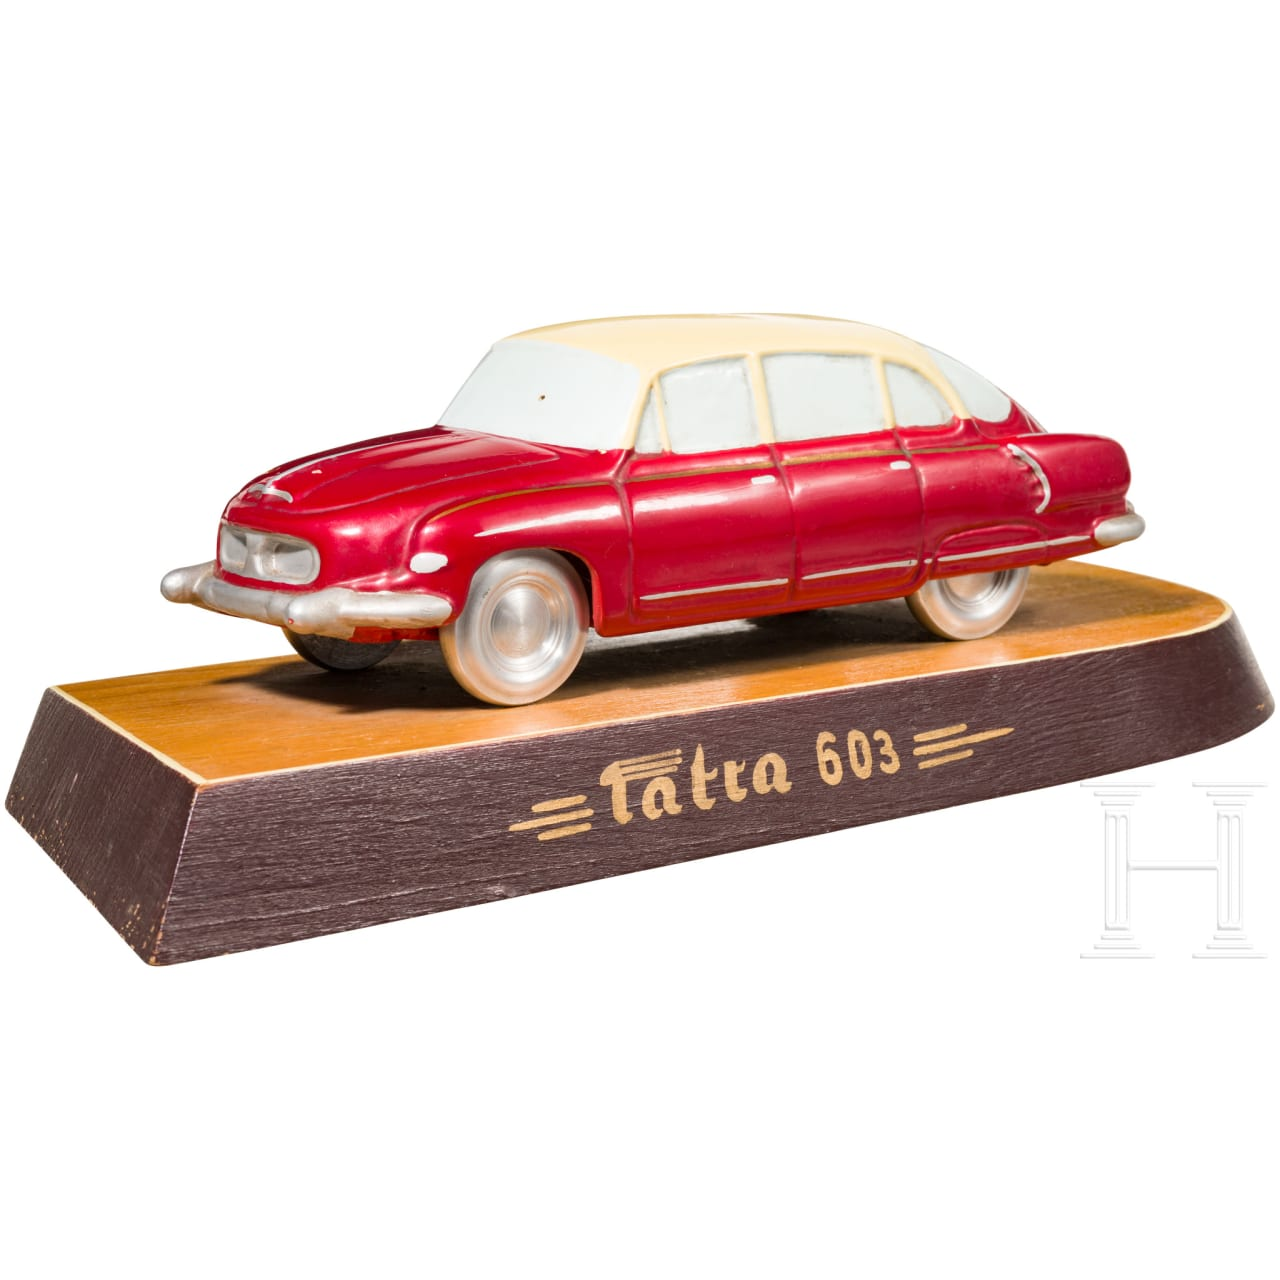 Desk model of a Tatra 603-2, 1960s